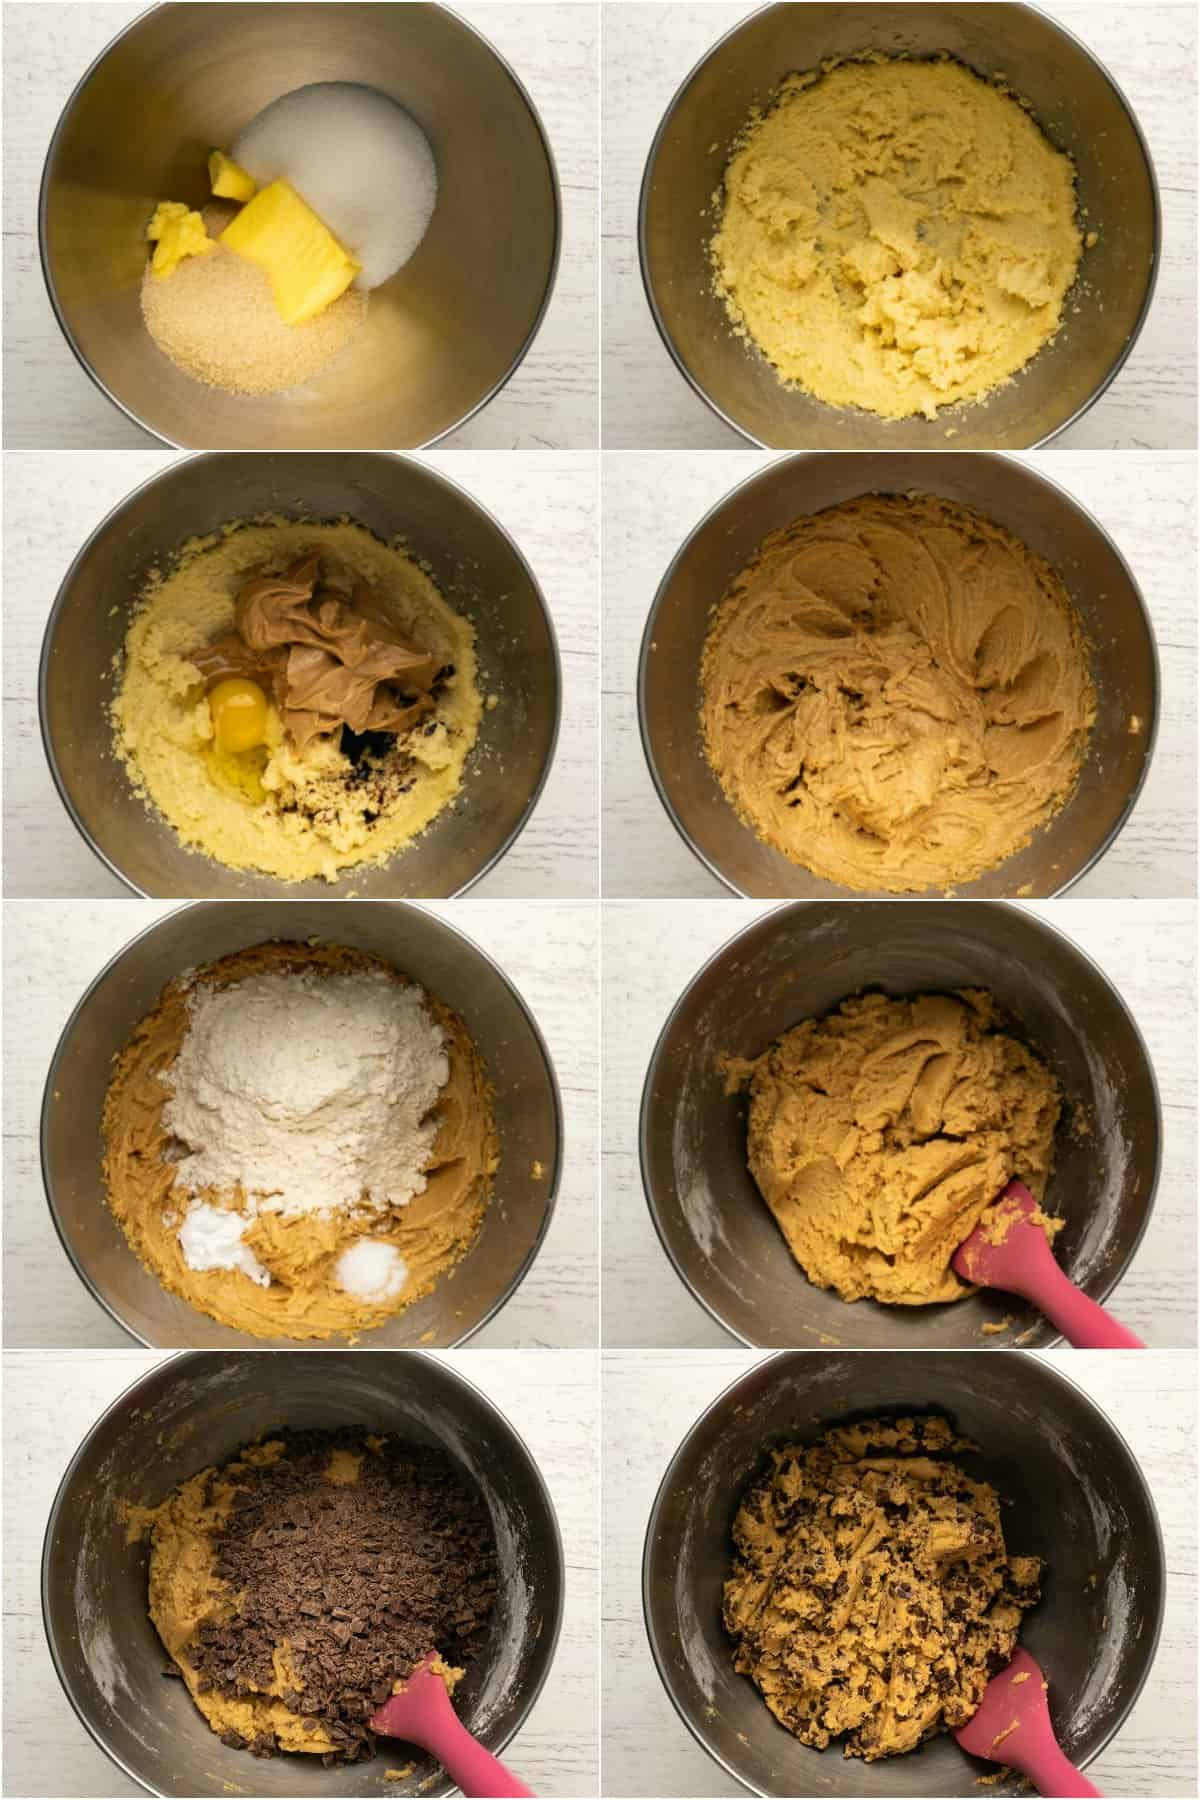 Step by step process photo collage of making peanut butter chocolate chip cookies.